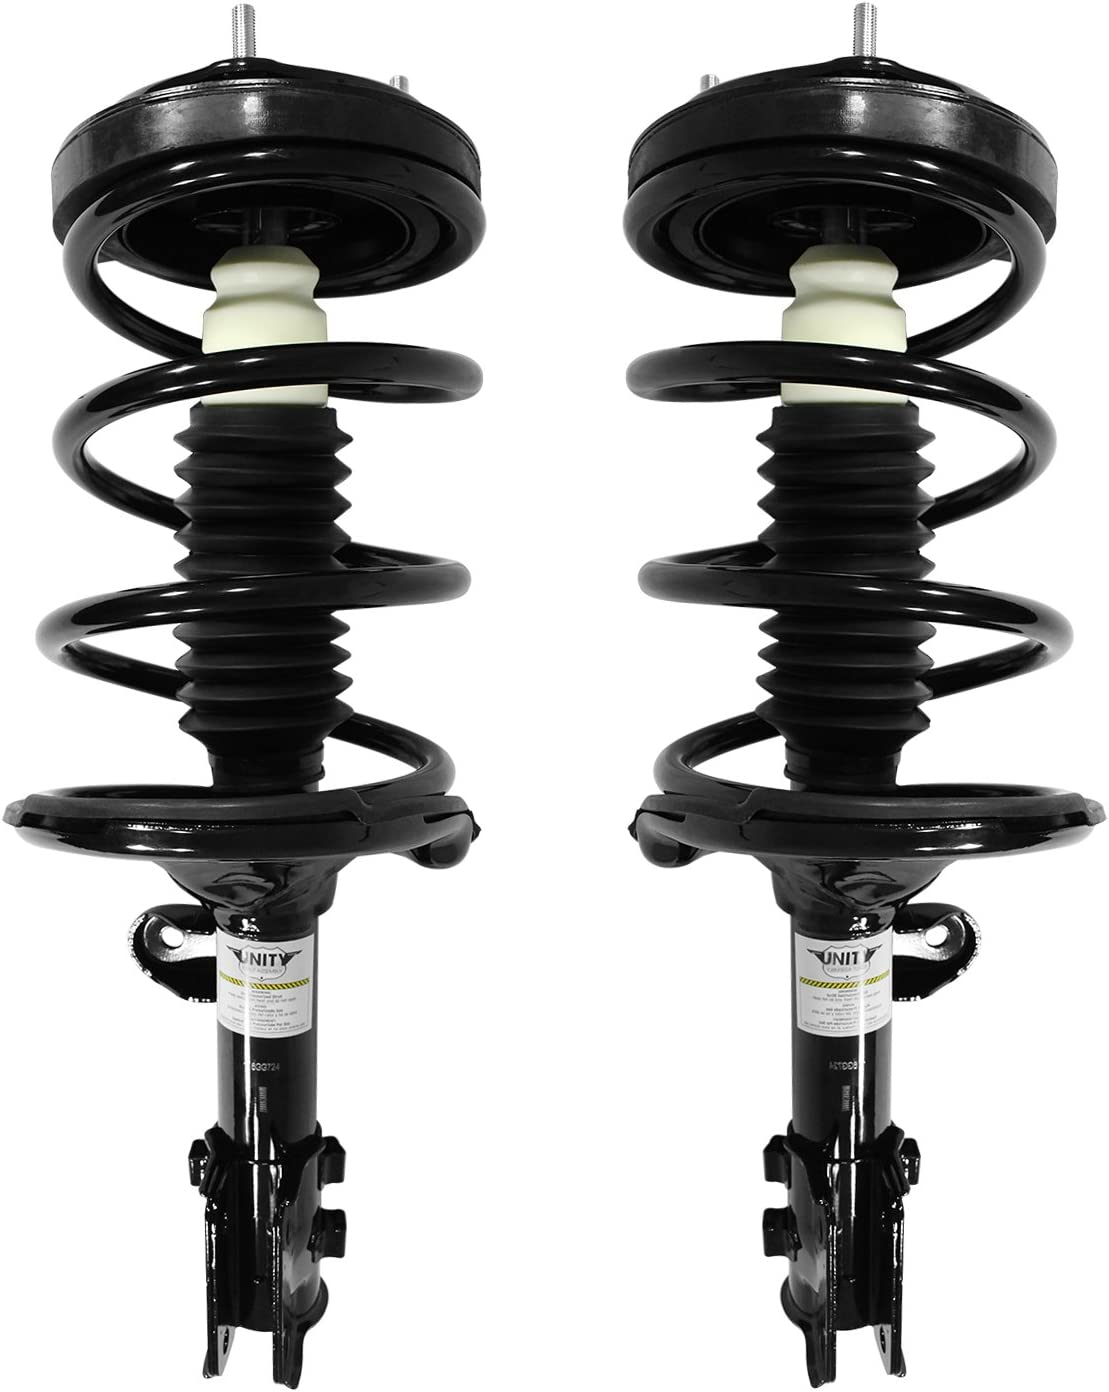 Unity Front Loaded Strut Coil Spring Assembly Pair Fit 2005-2010 Kia Sportage